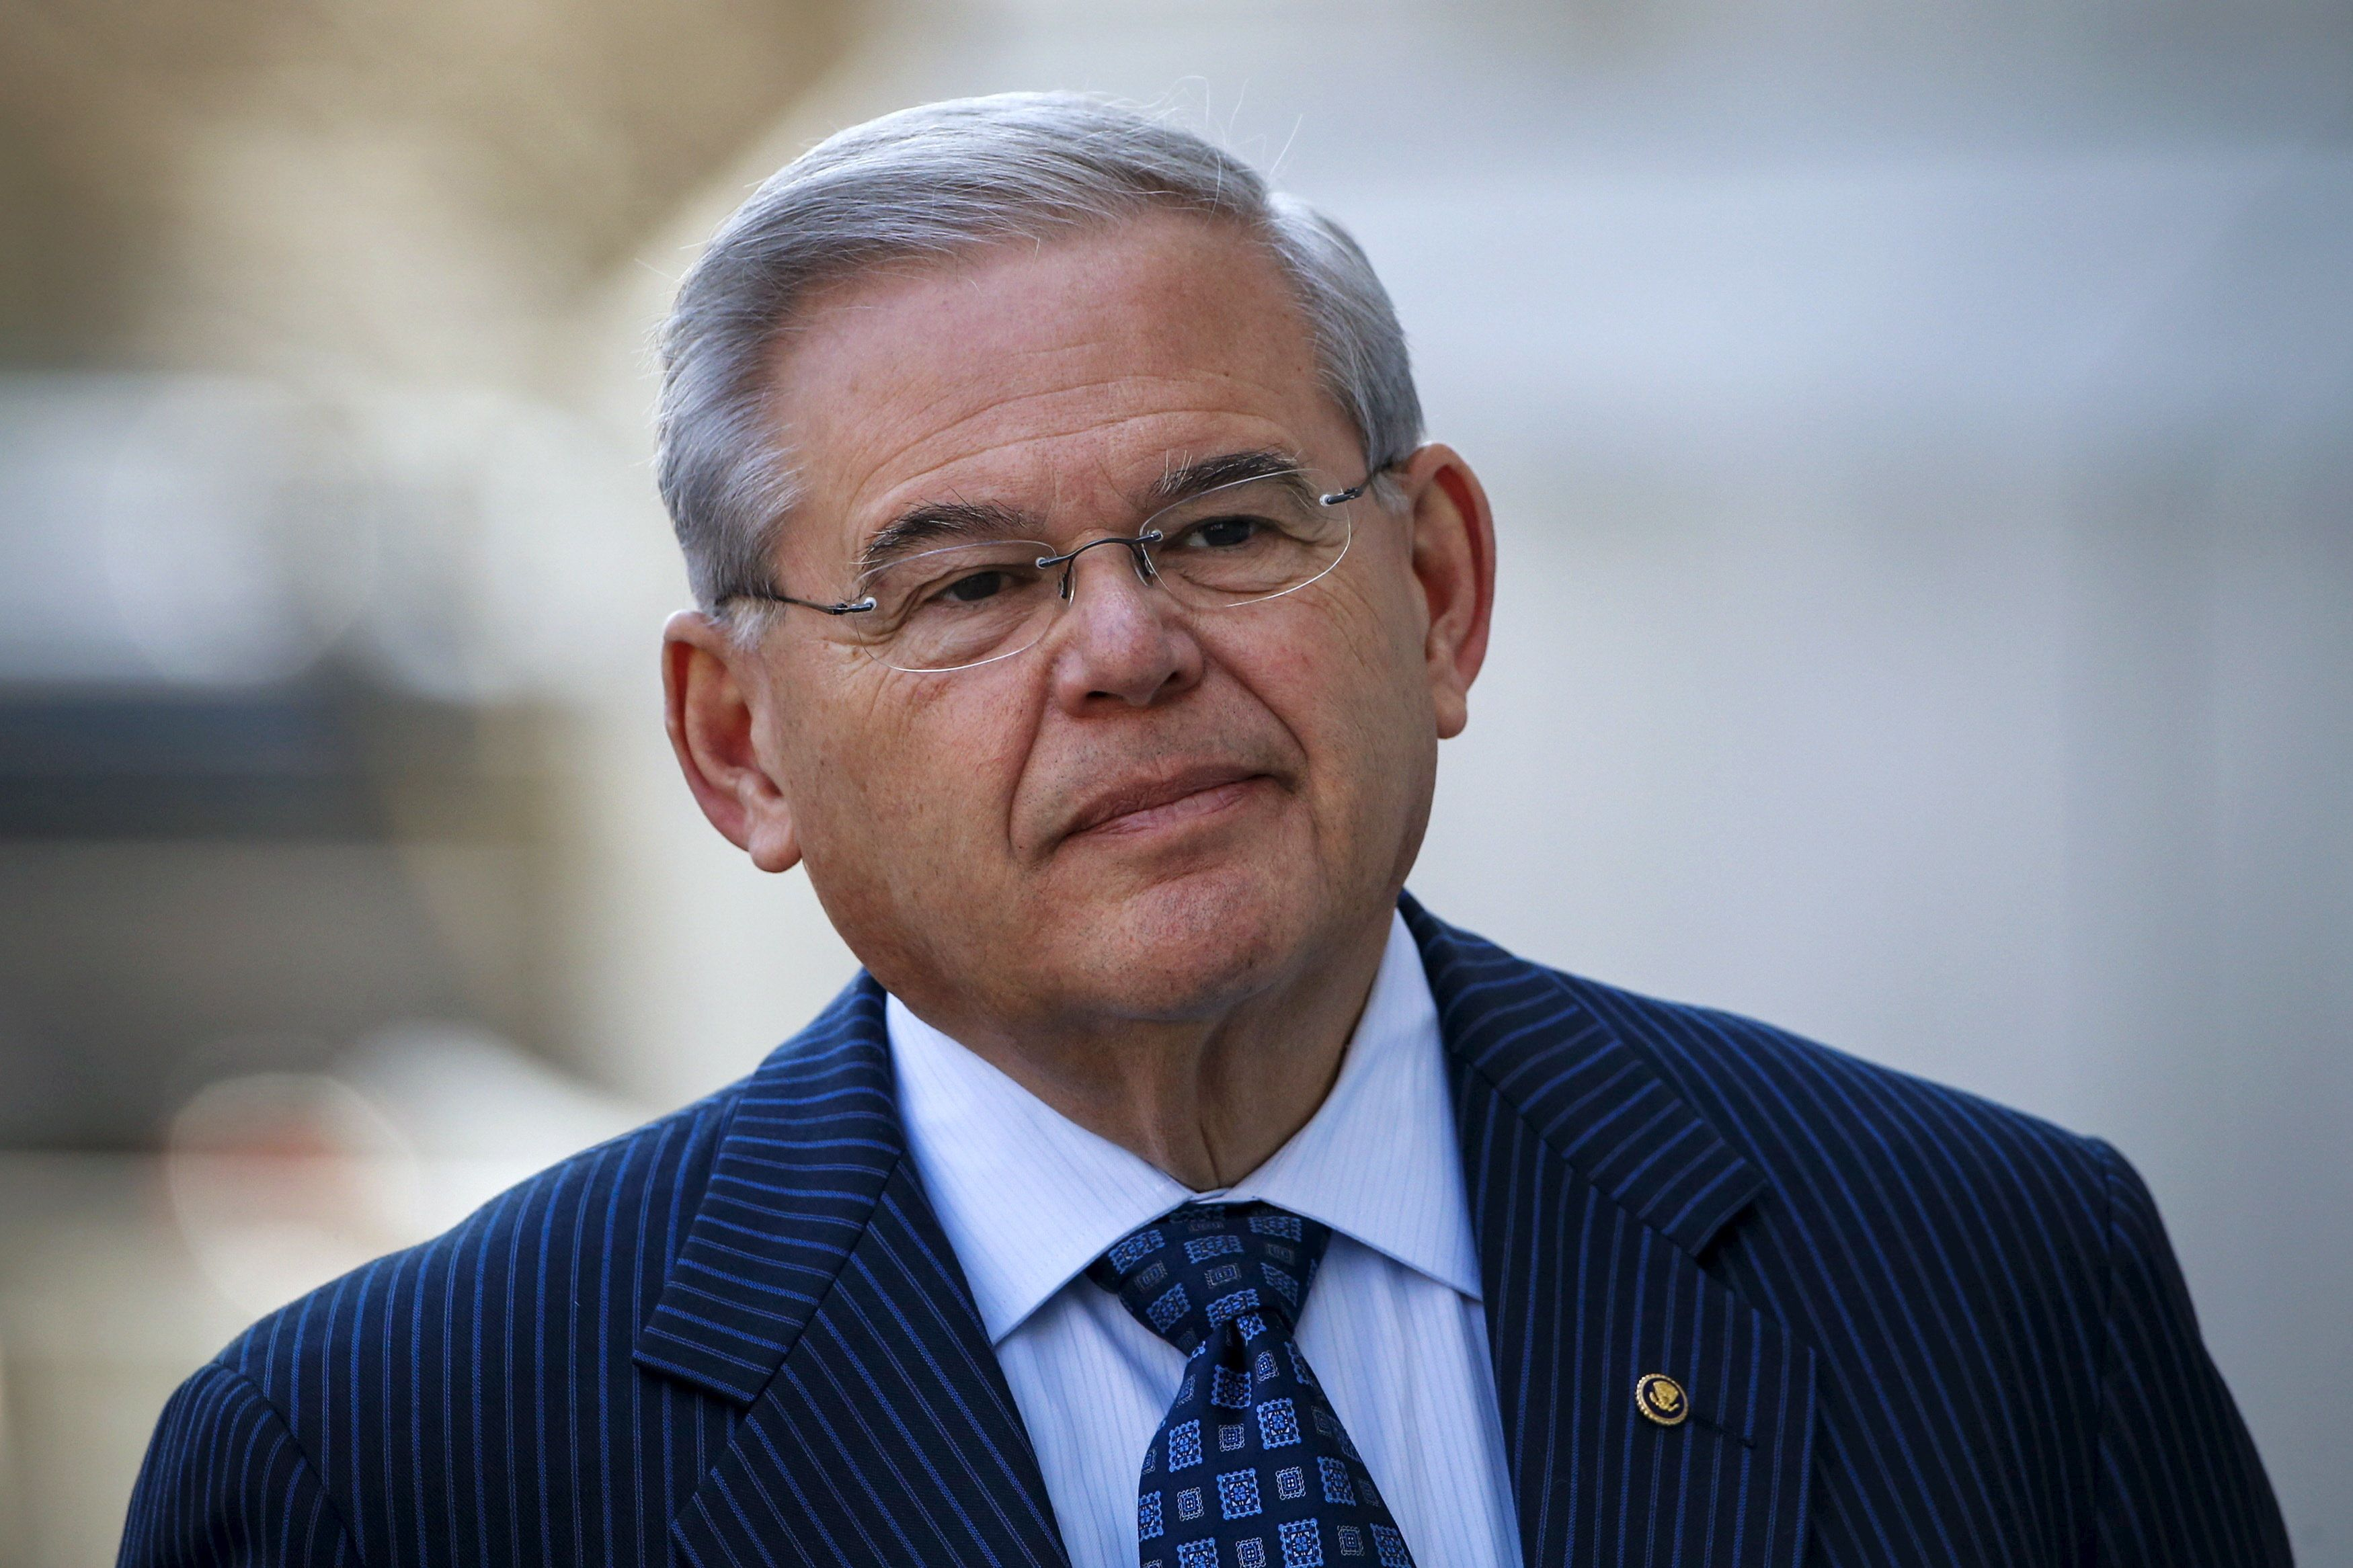 U.S. Senator Bob Menendez (D-NJ) arrives to the Federal court in Newark, New Jersey April 2, 2015. Senator Menendez of New Jersey was indicted on corruption charges, allegations that the high-ranking Democrat vowed to fight at a news conference on Wednesday night. REUTERS/Eduardo Munoz